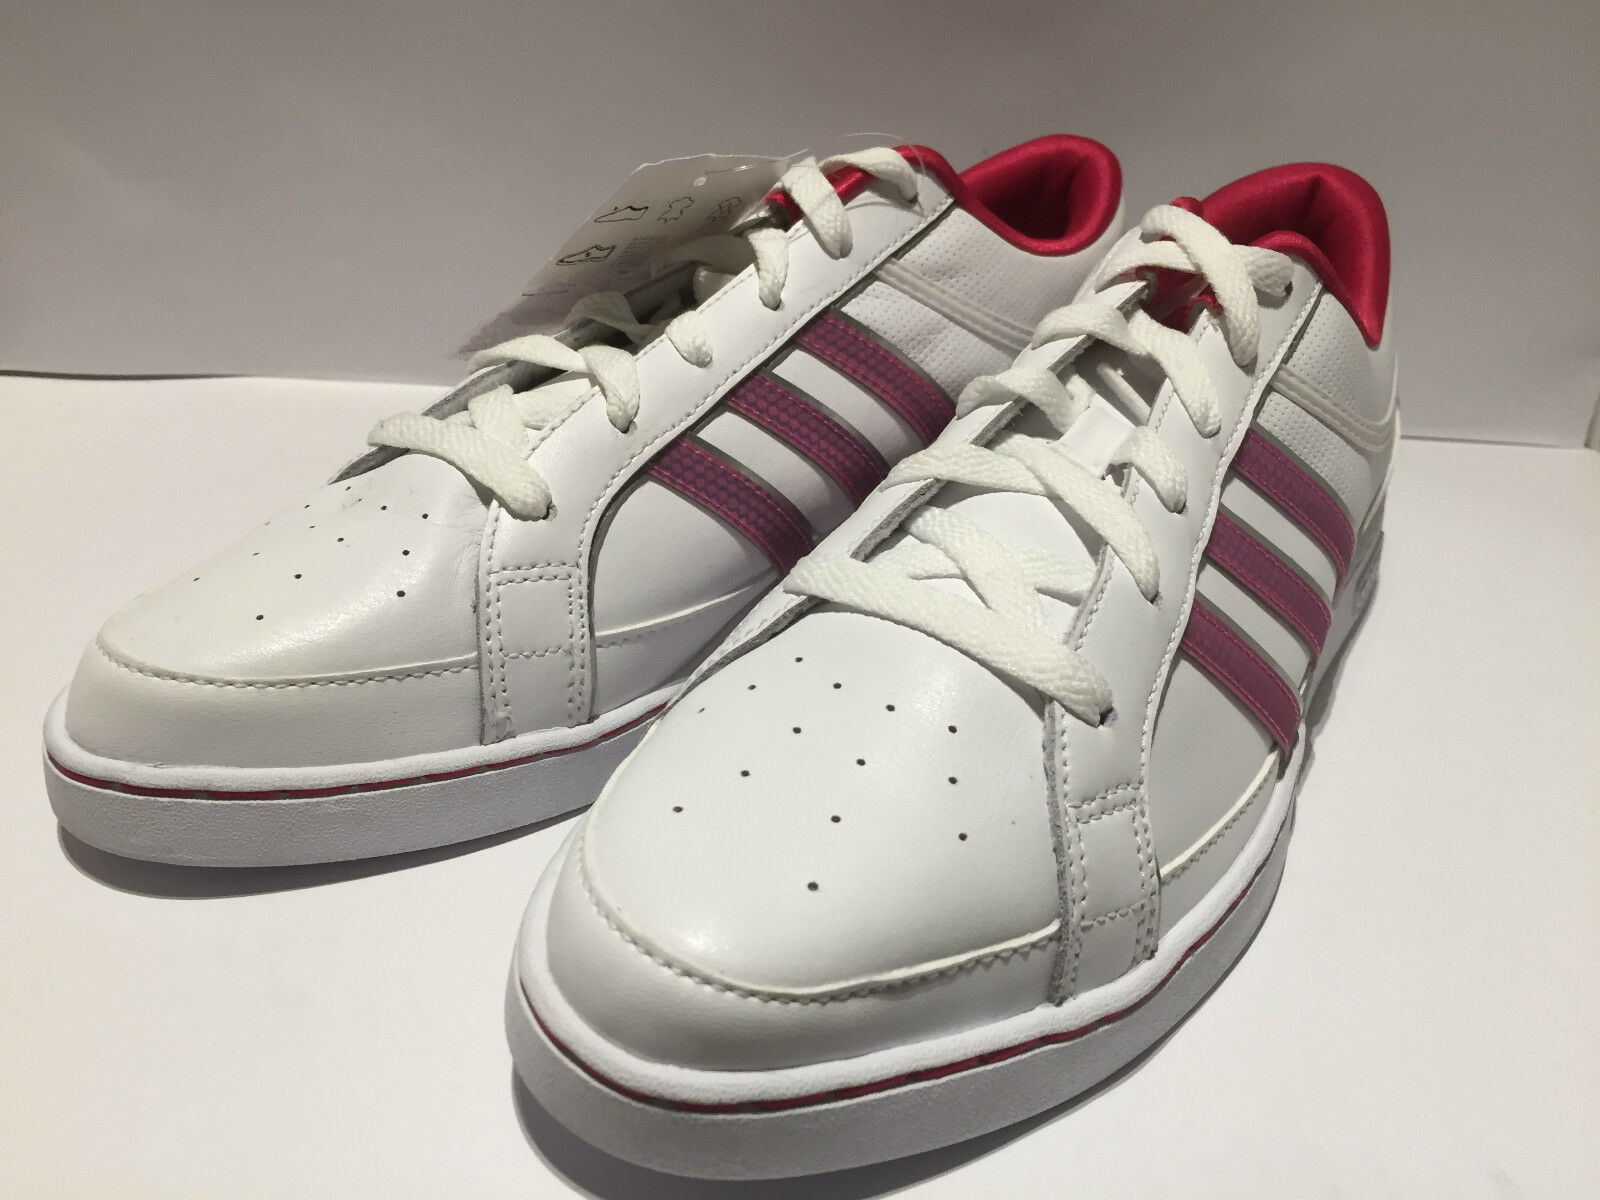 Womens Adidas Agashae Trainers G11919 in Size Narrow Fiiting